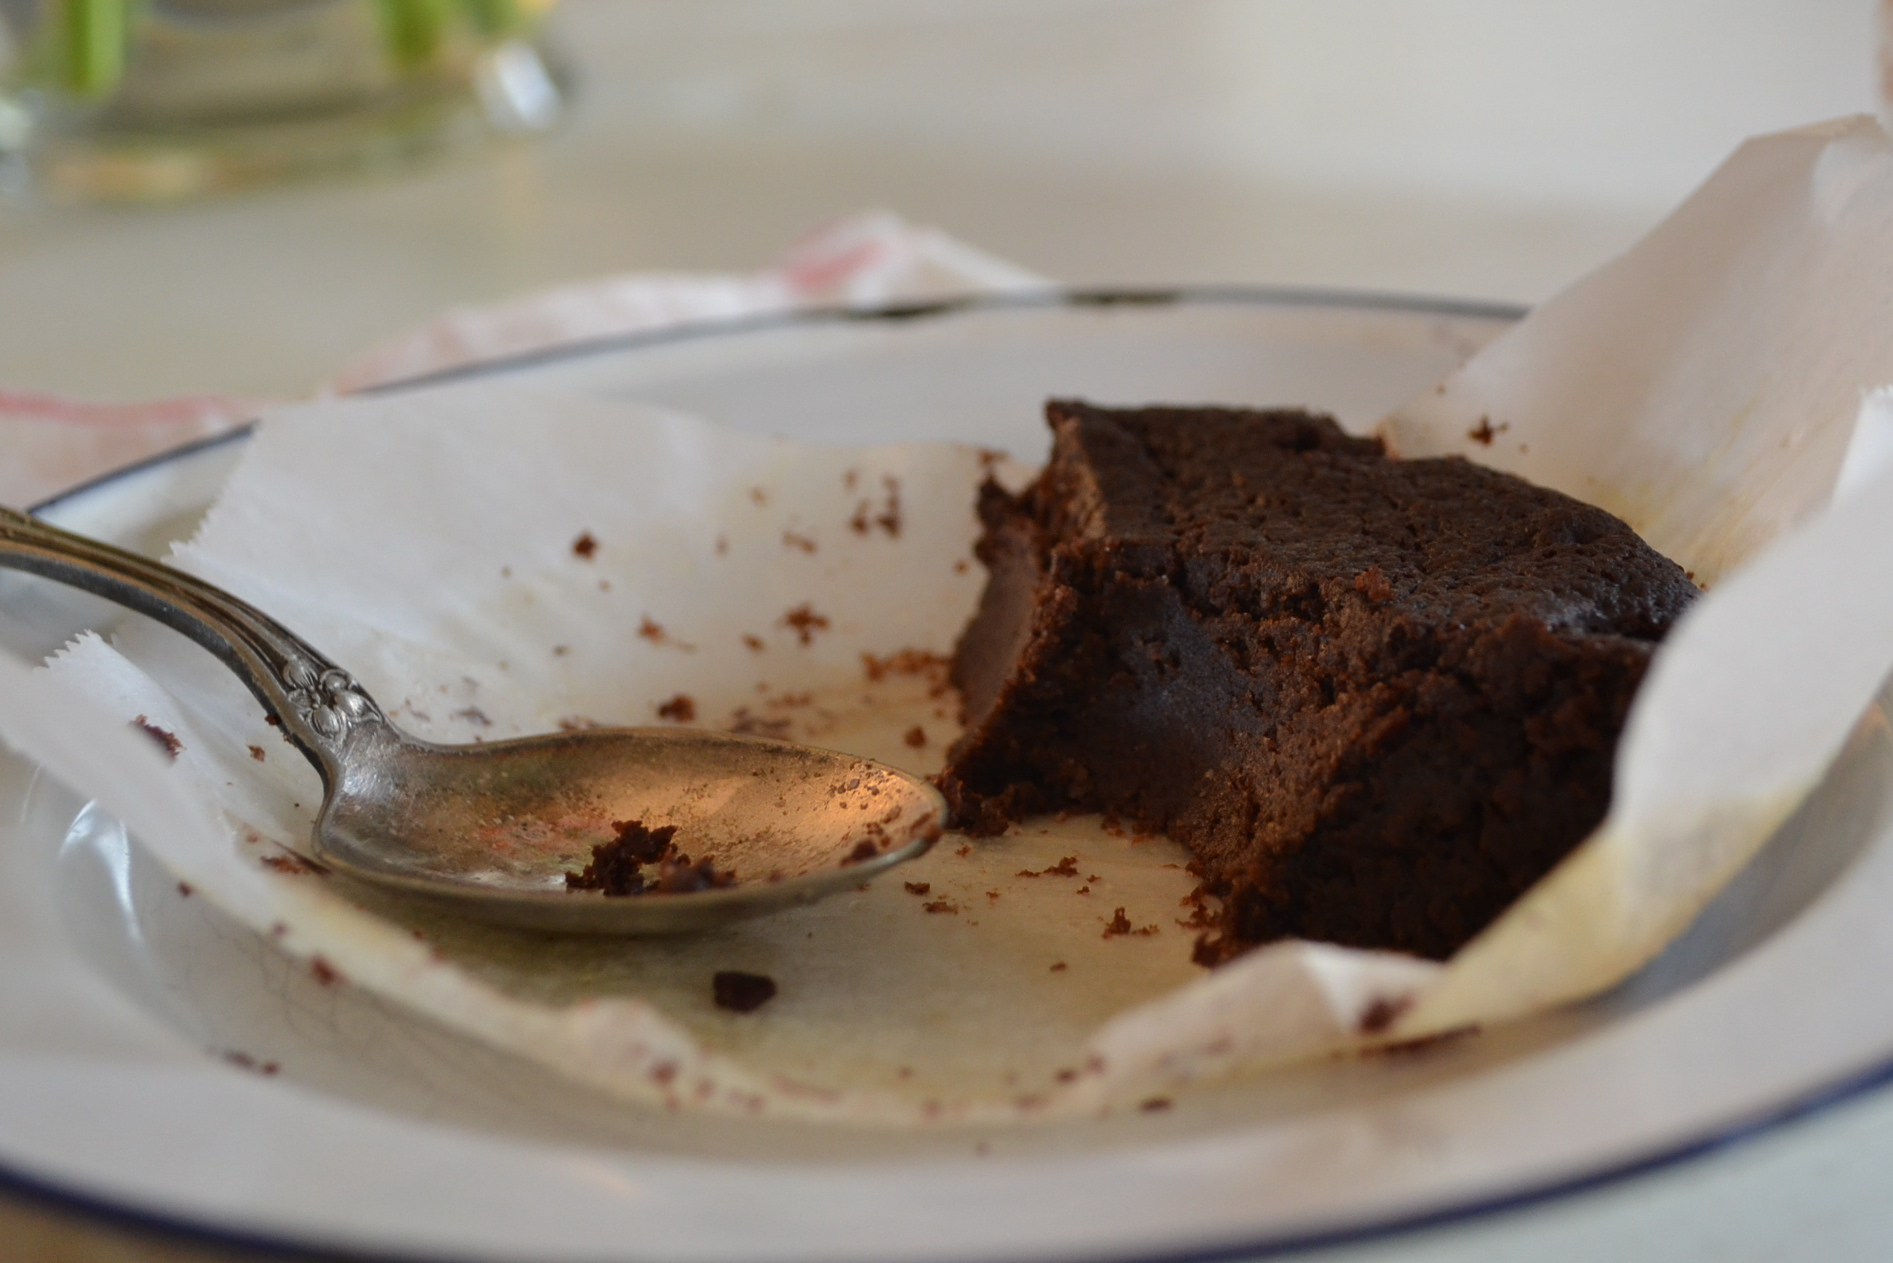 Chocolate Cake for Breakfast, or Why I Love Buckwheat | Tending the ...